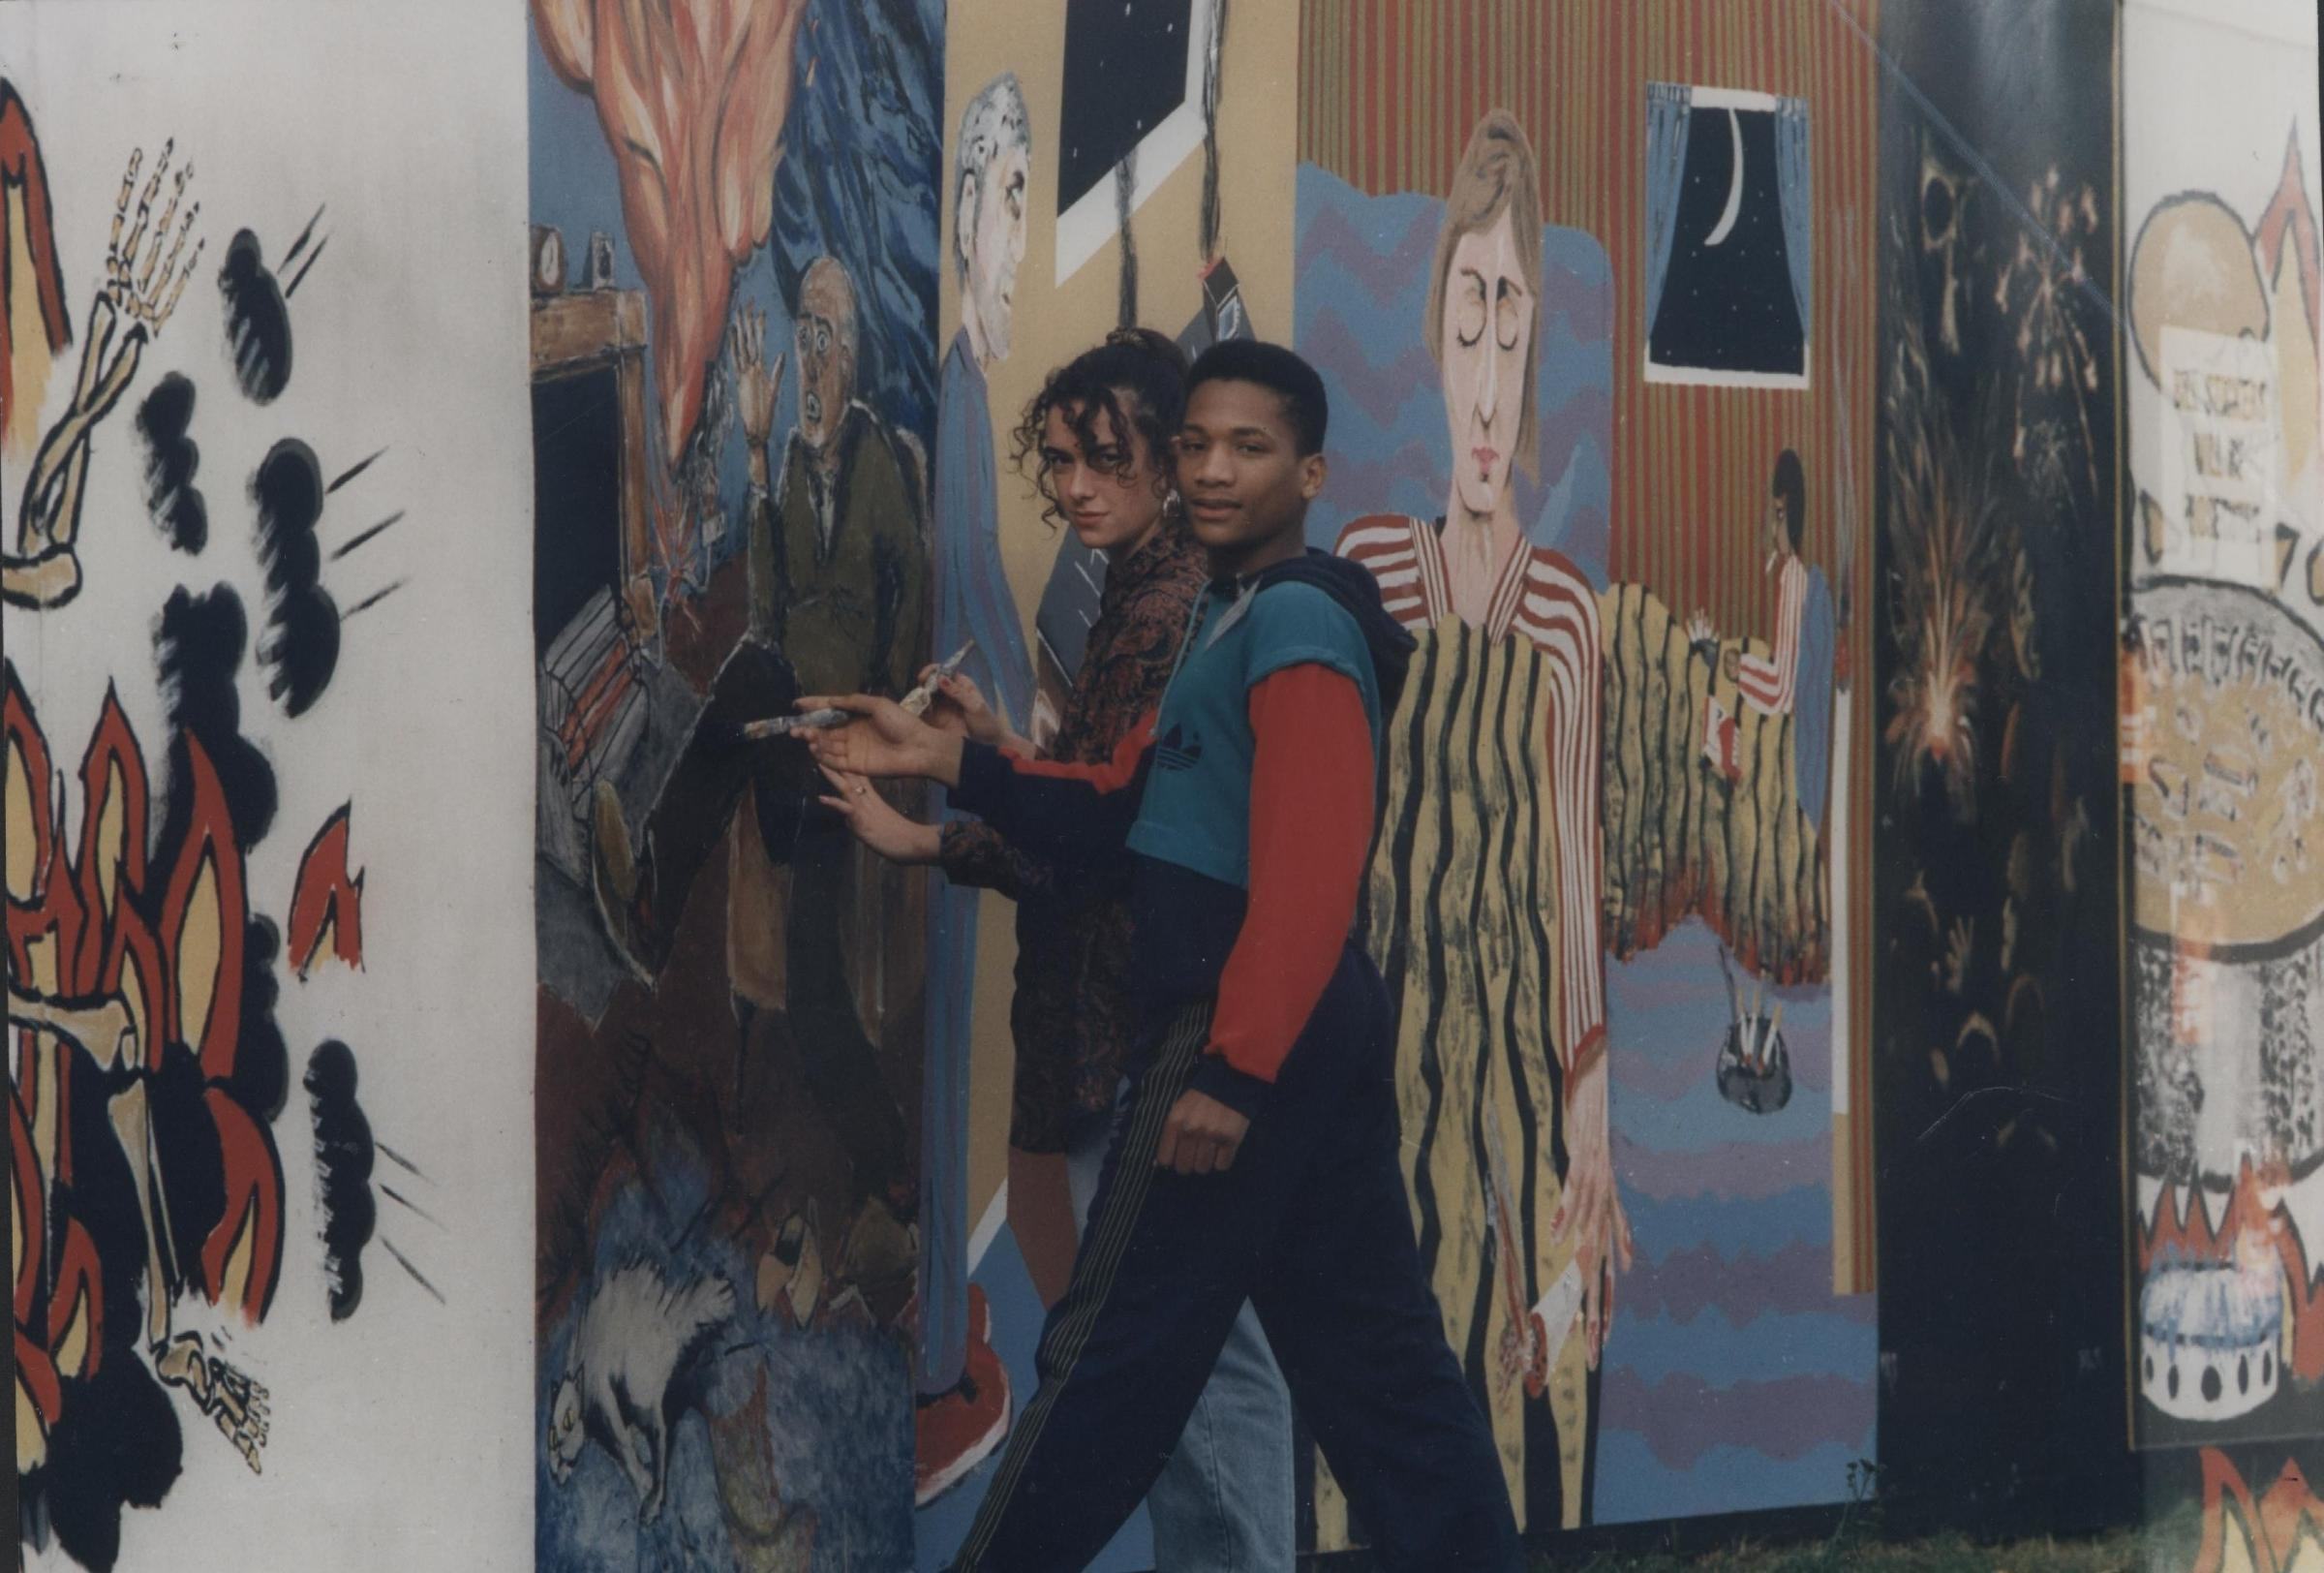 Lucy Thacker and Wayne Sinclair from Afro-Caribbean Art group in 1989